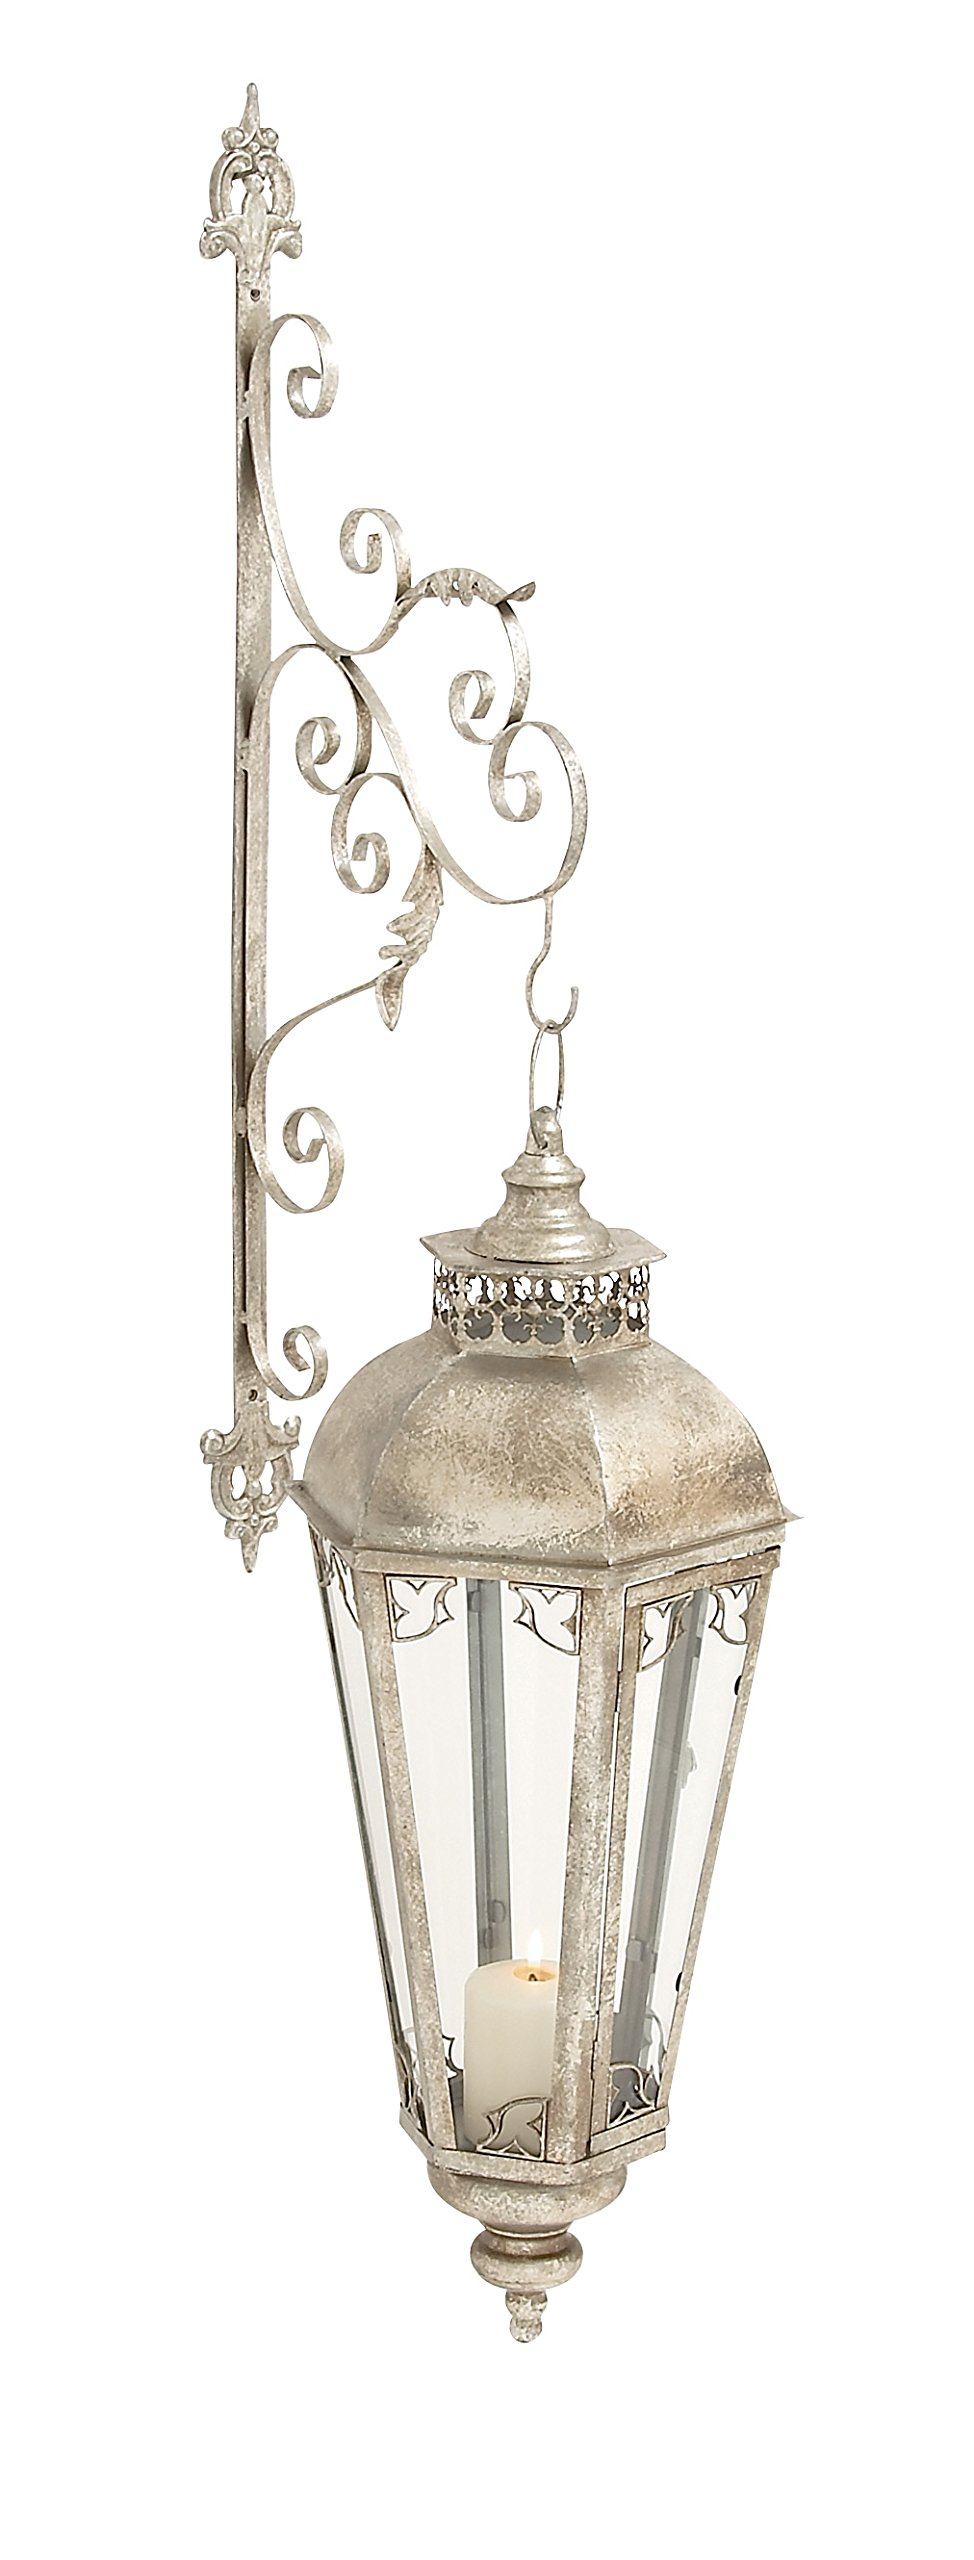 Benzara Vintage Themed Metal Glass Wall Lantern